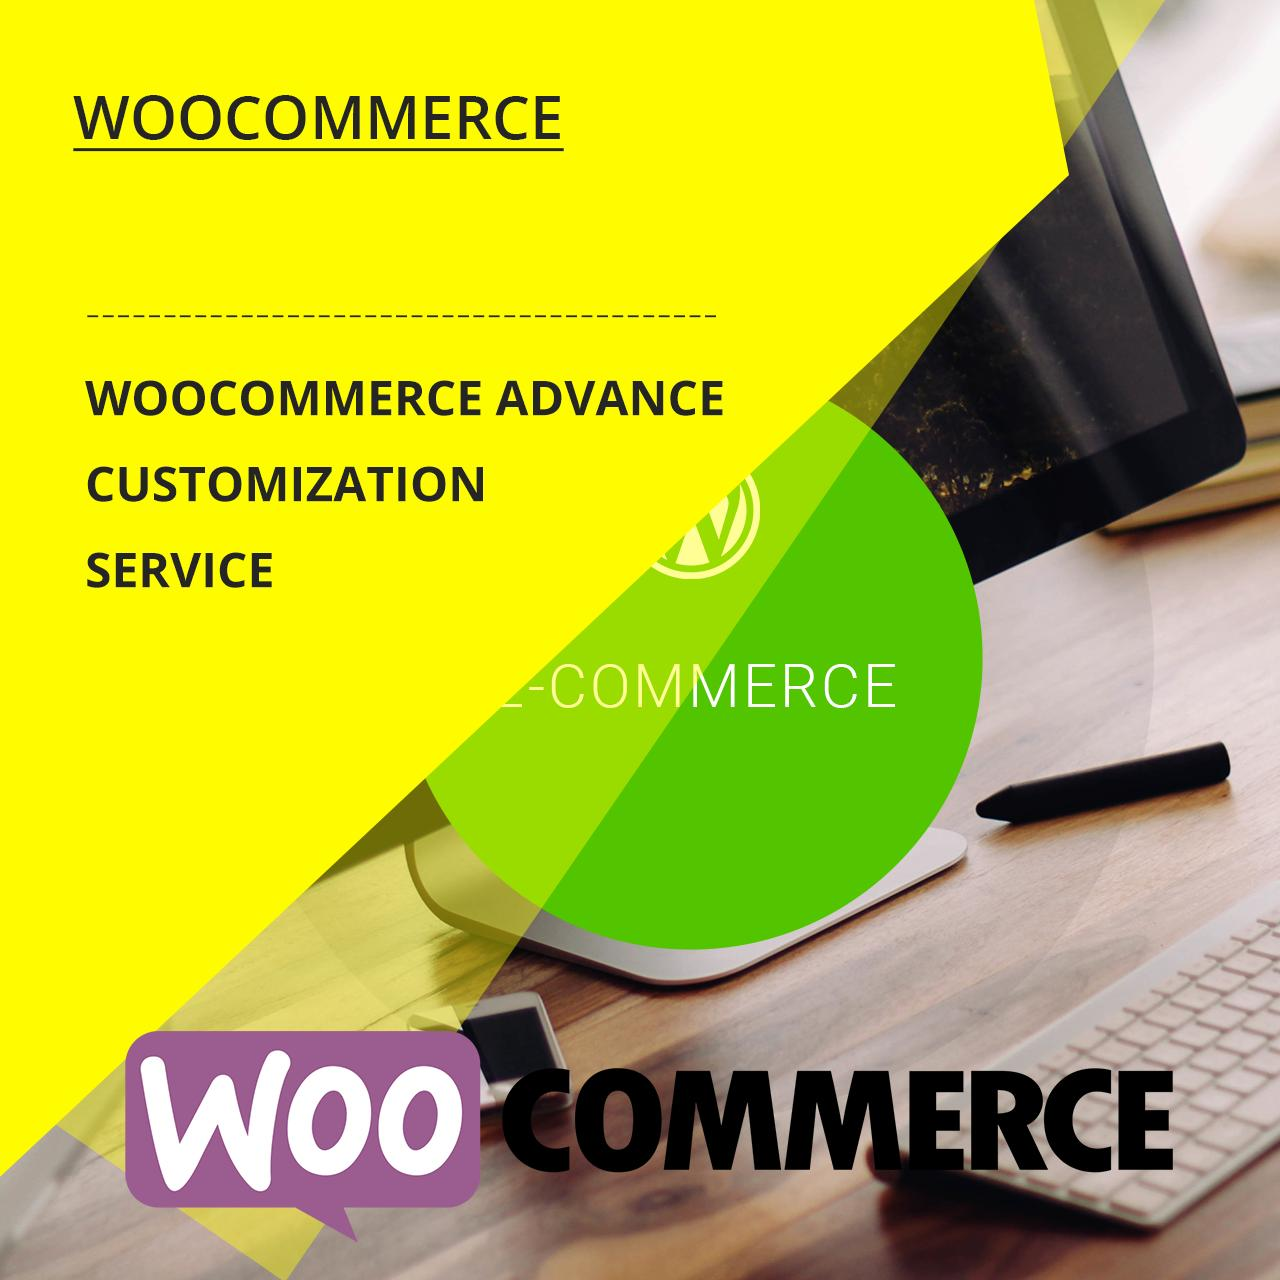 WooCommerce Advance Customization Service by zendcrew - 108322